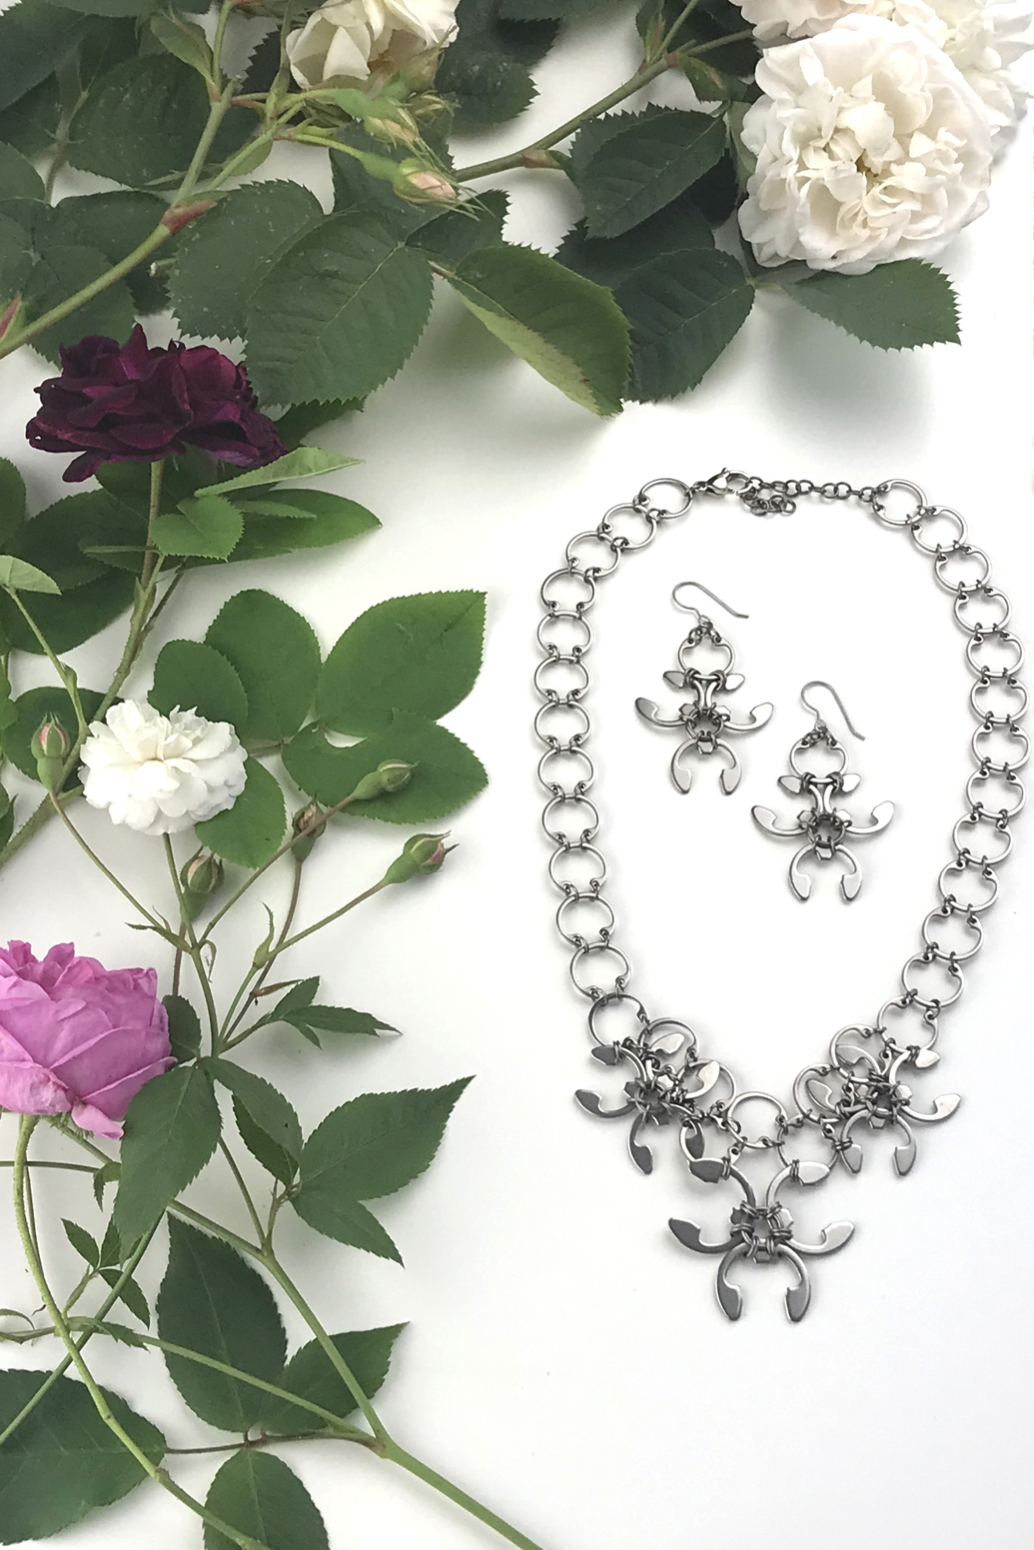 Cropped flatlay of old roses (Rosa alba, Rosa gallica officinalis, moss rose 'Capitaine John Ingram', & 'Felicite et Perpetue') with the Garland Necklace and Garland Earrings in Wraptillion's studio.